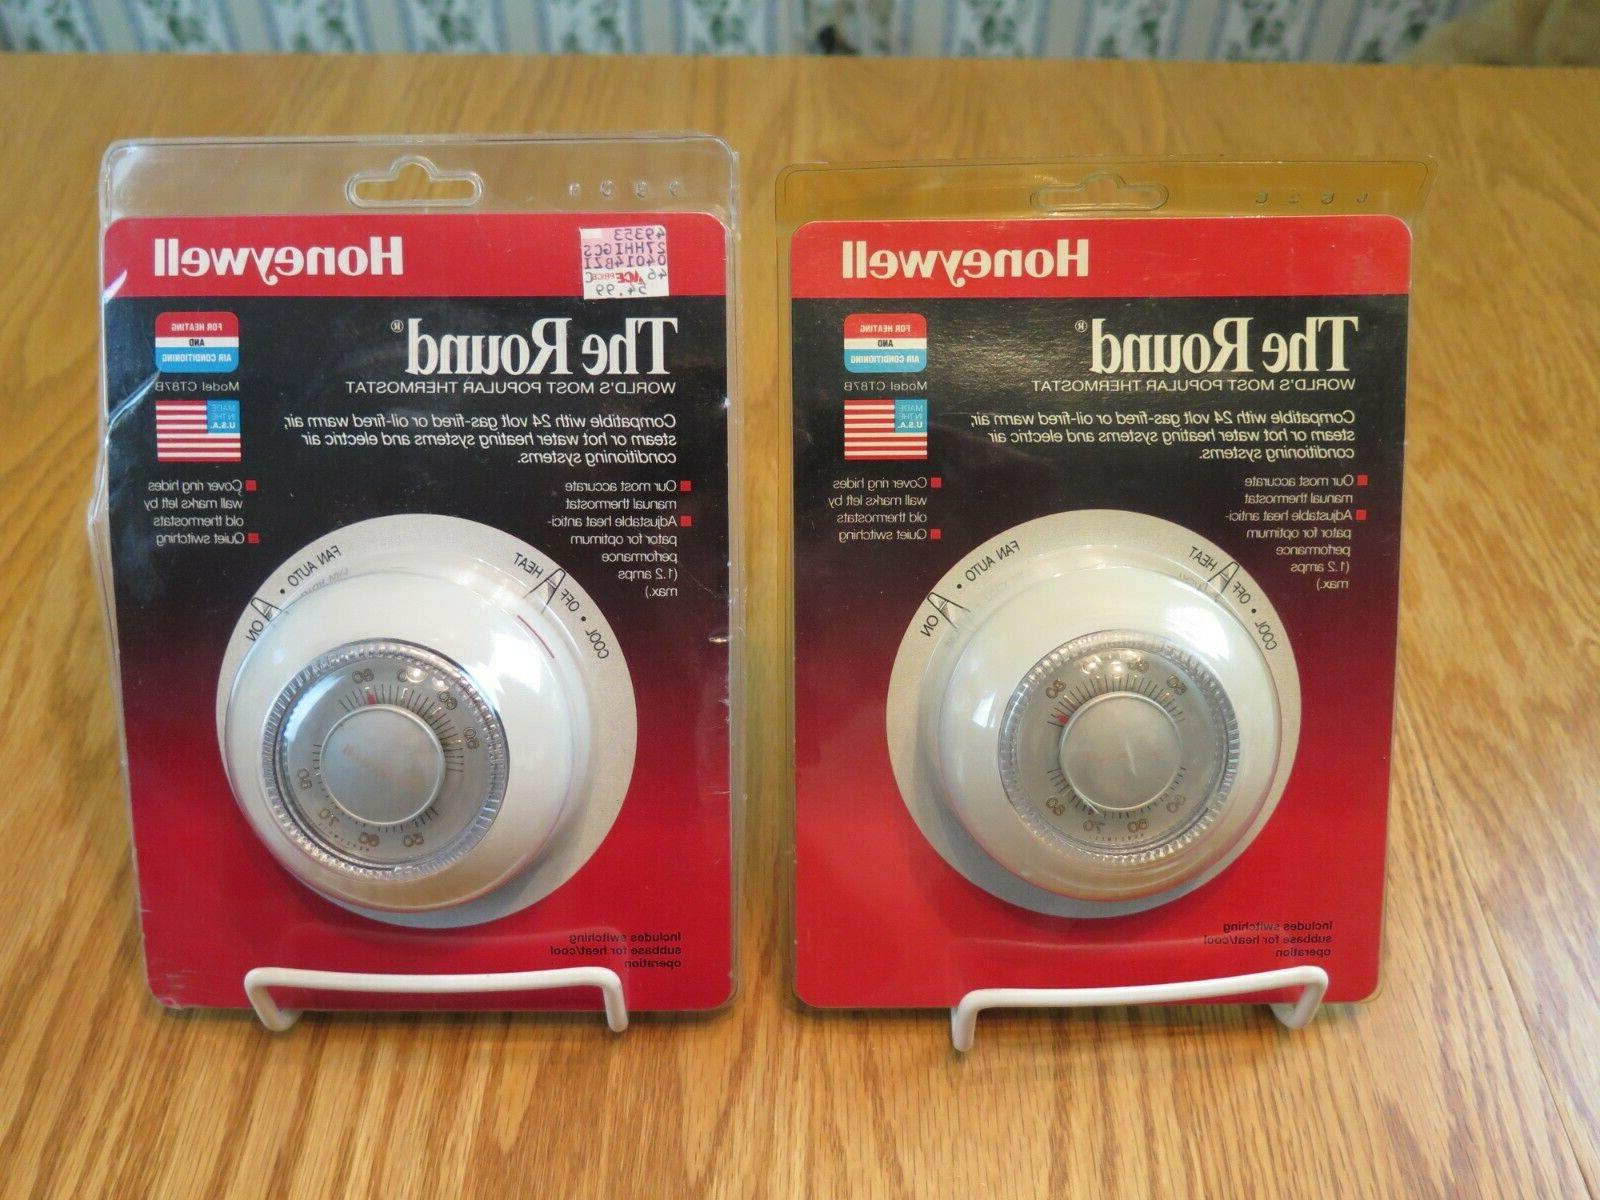 round ct87 series manual thermostats